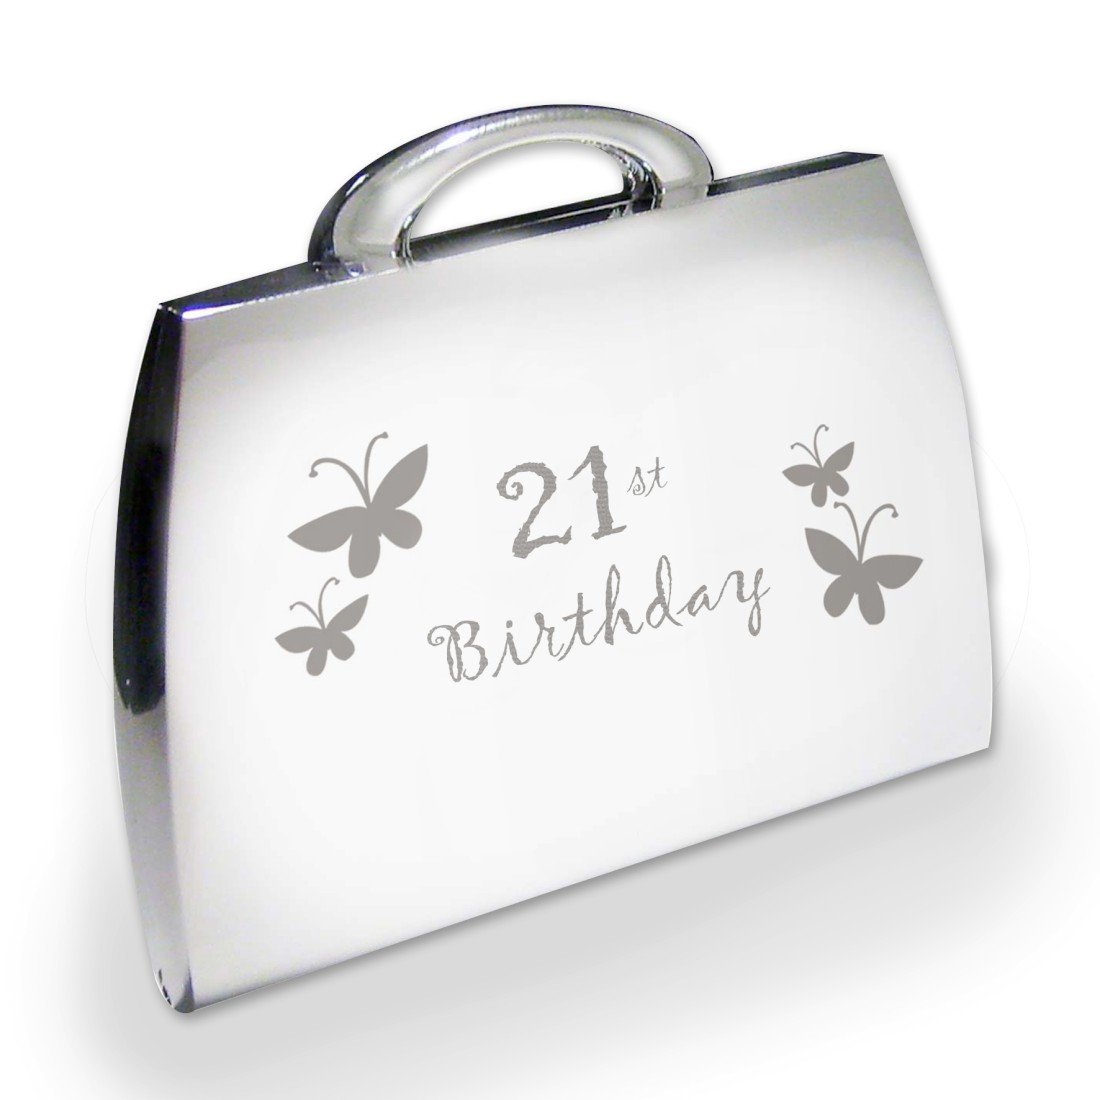 C.PM 21st Butterfly Handbag Compact Personalised Memento